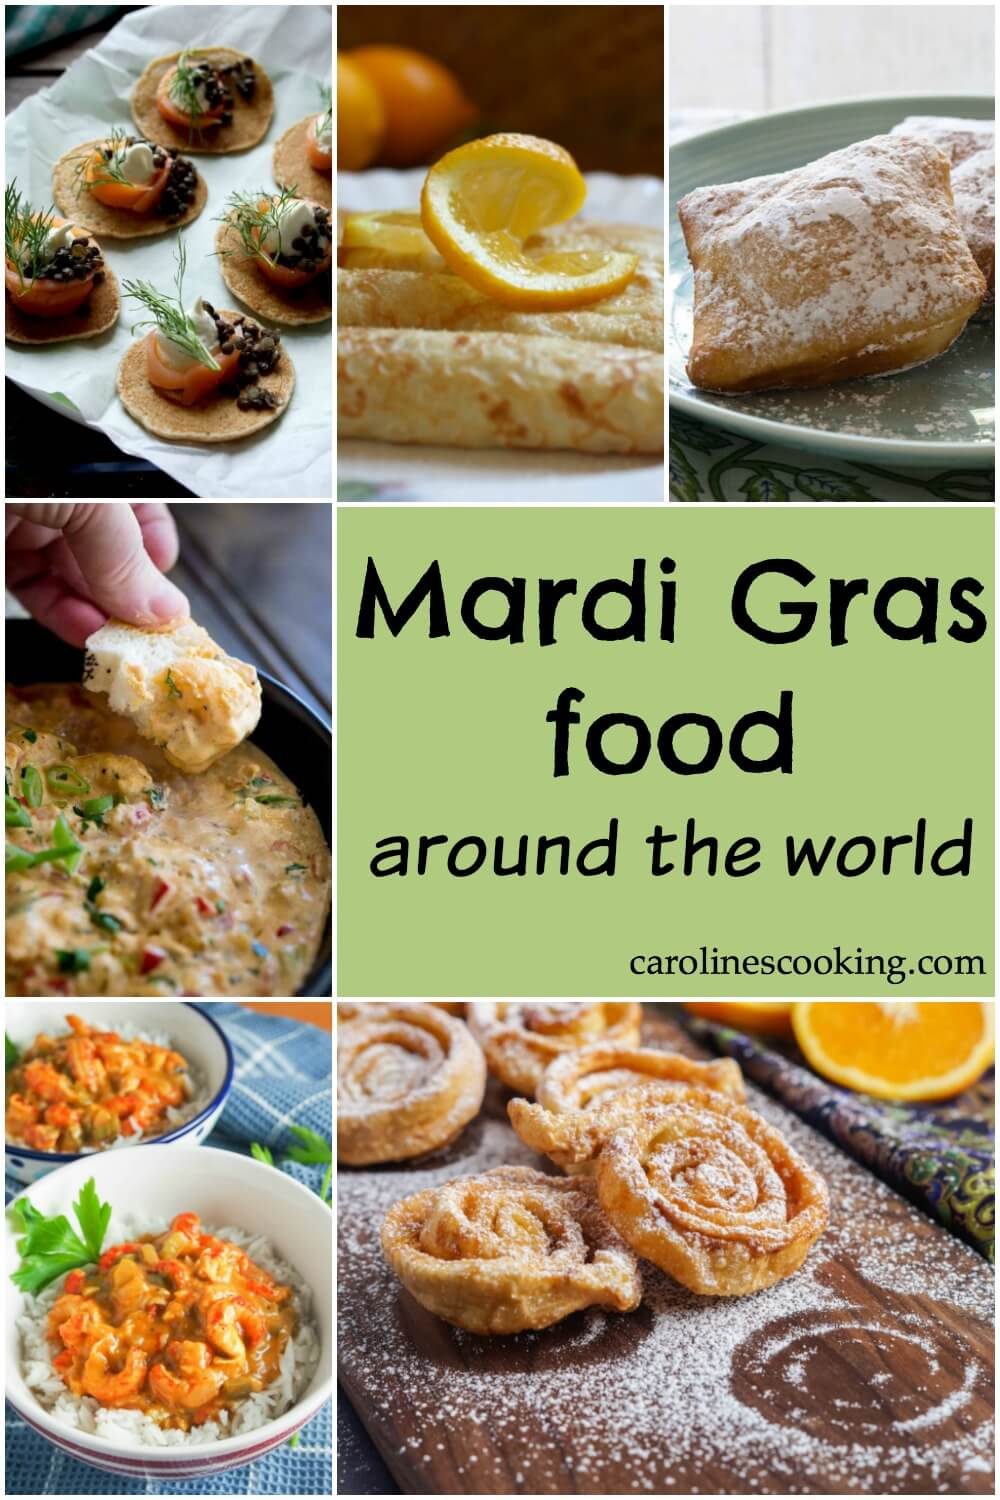 Mardi gras food around the world - from beignets in New Orleans to brigadeiros in Brazil. Mardi Gras goes by many names and has many flavors, sweet and savory - discover some traditional dishes and try some yourself! #mardi gras #international #traditional #recipes #roundup